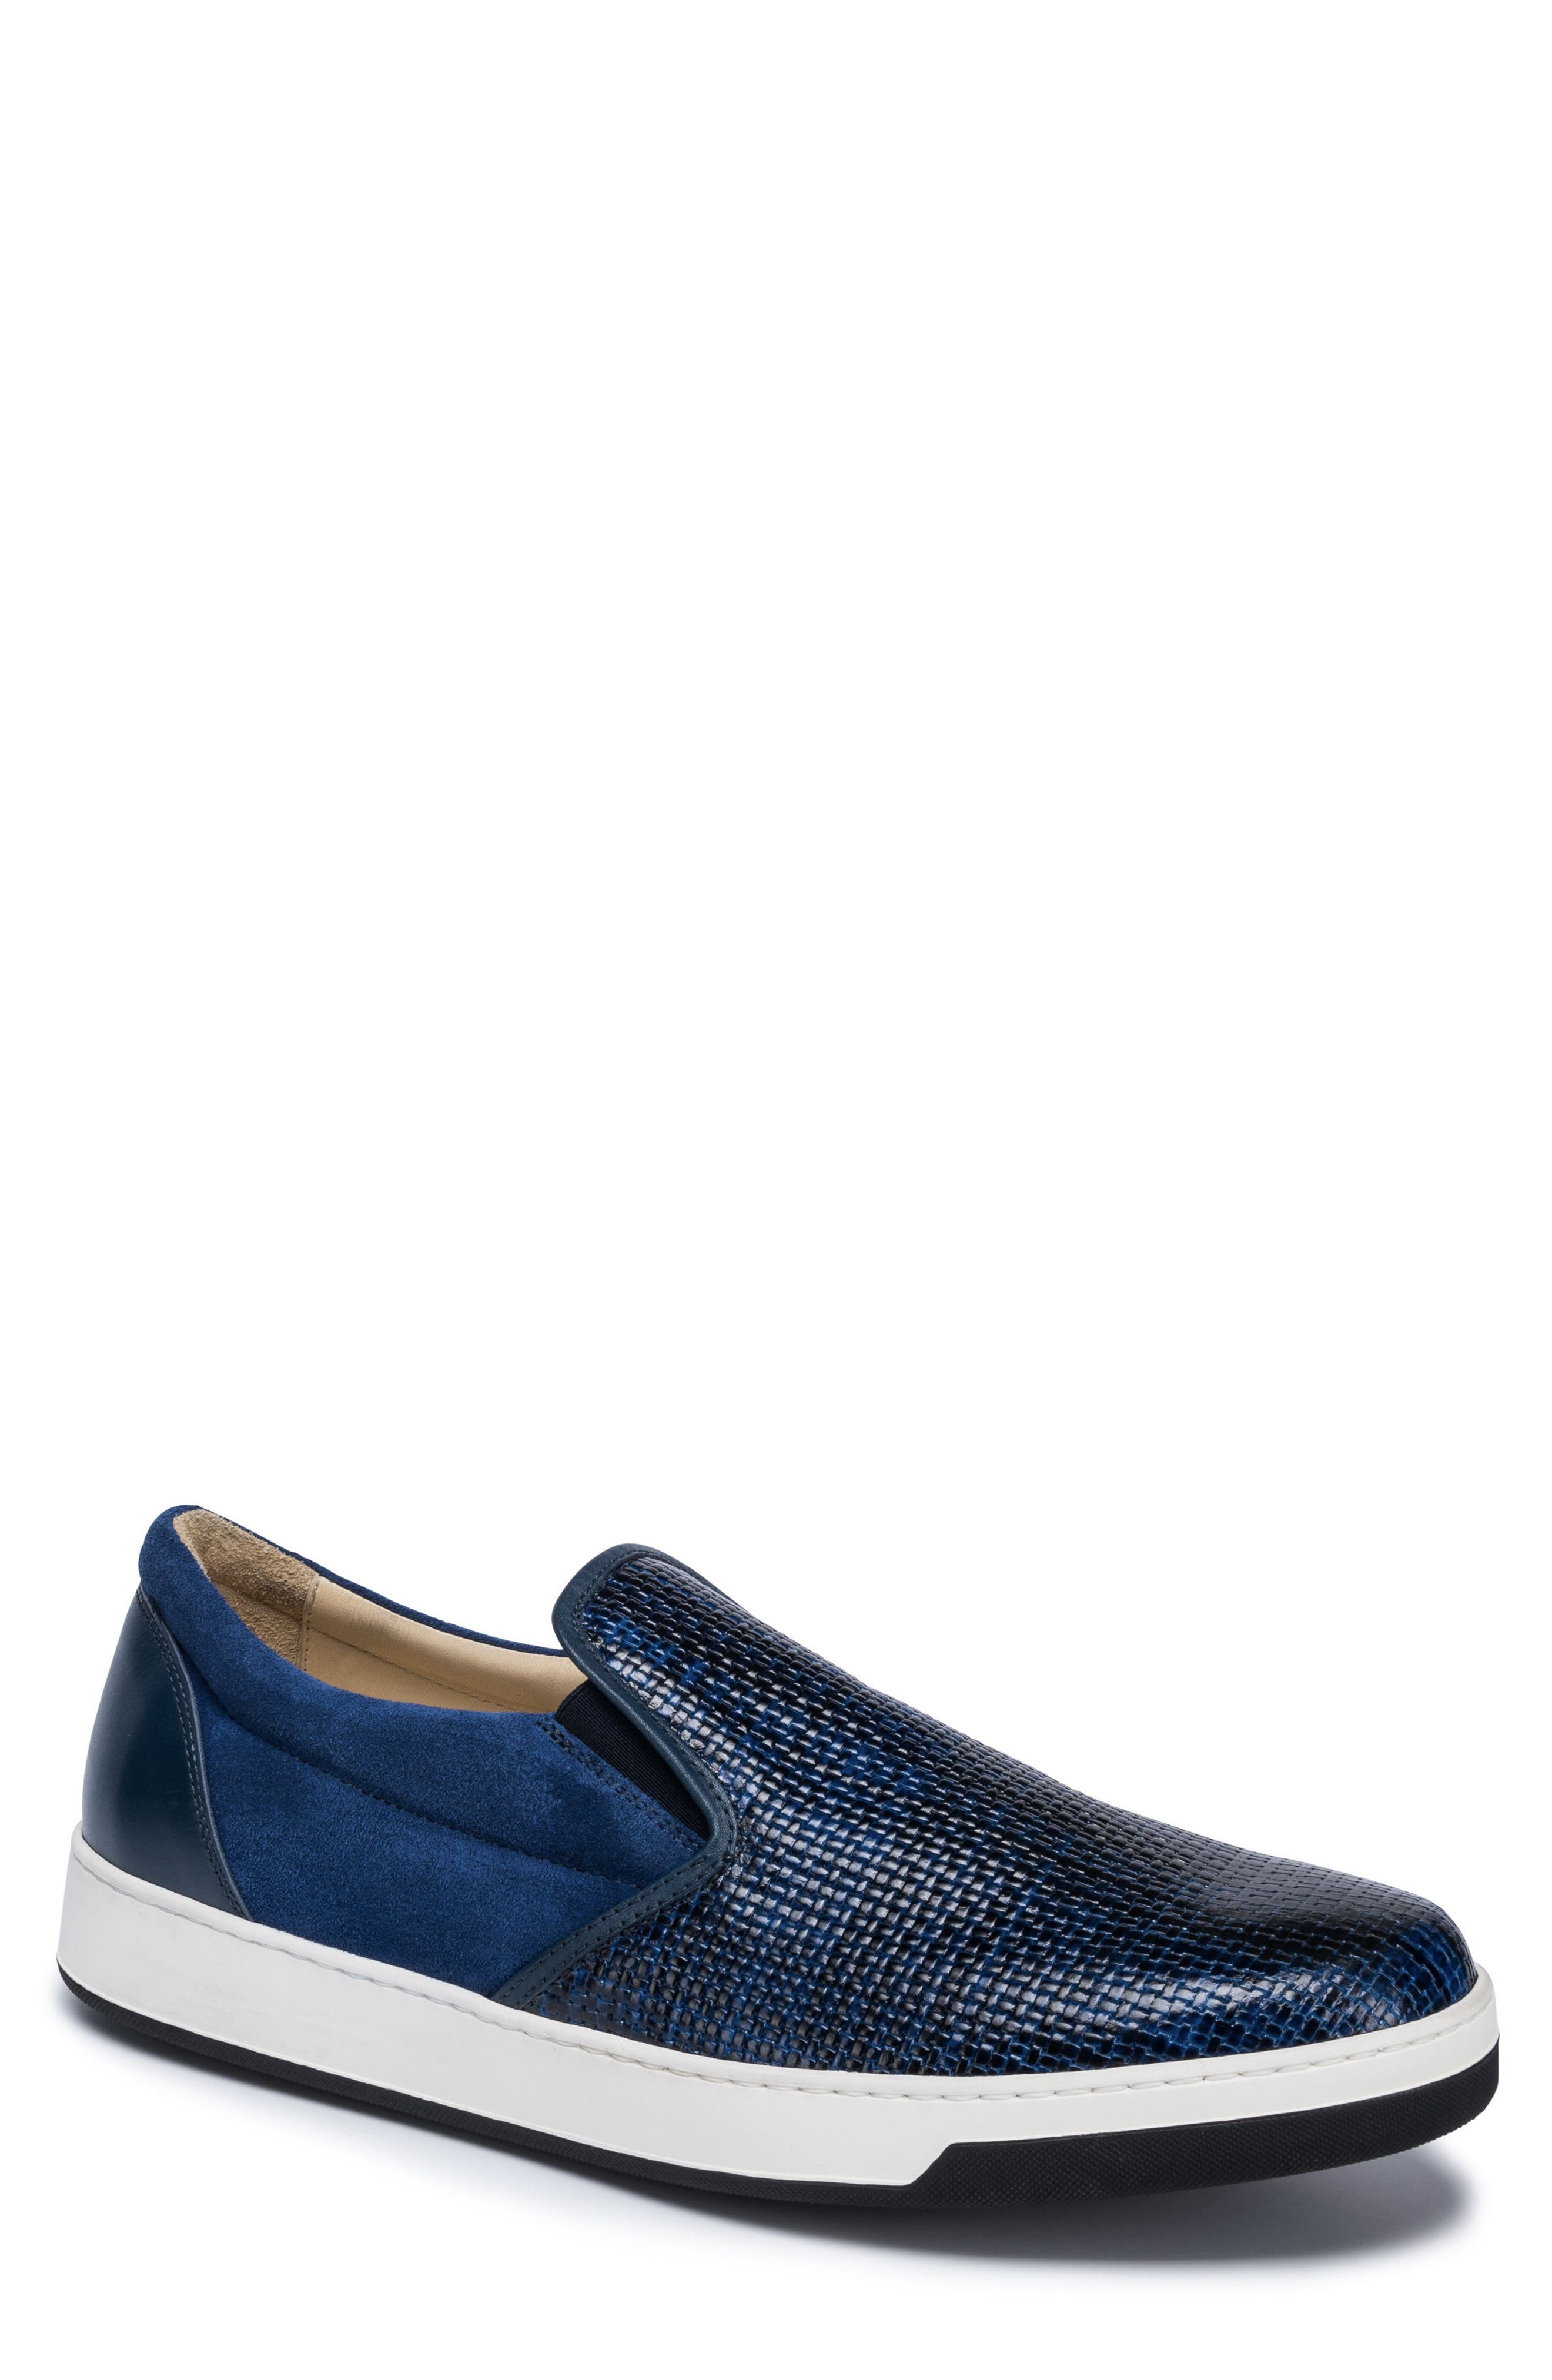 Cinque Terre Woven Slip-On Sneaker,                             Main thumbnail 1, color,                             Blue Leather/ Suede